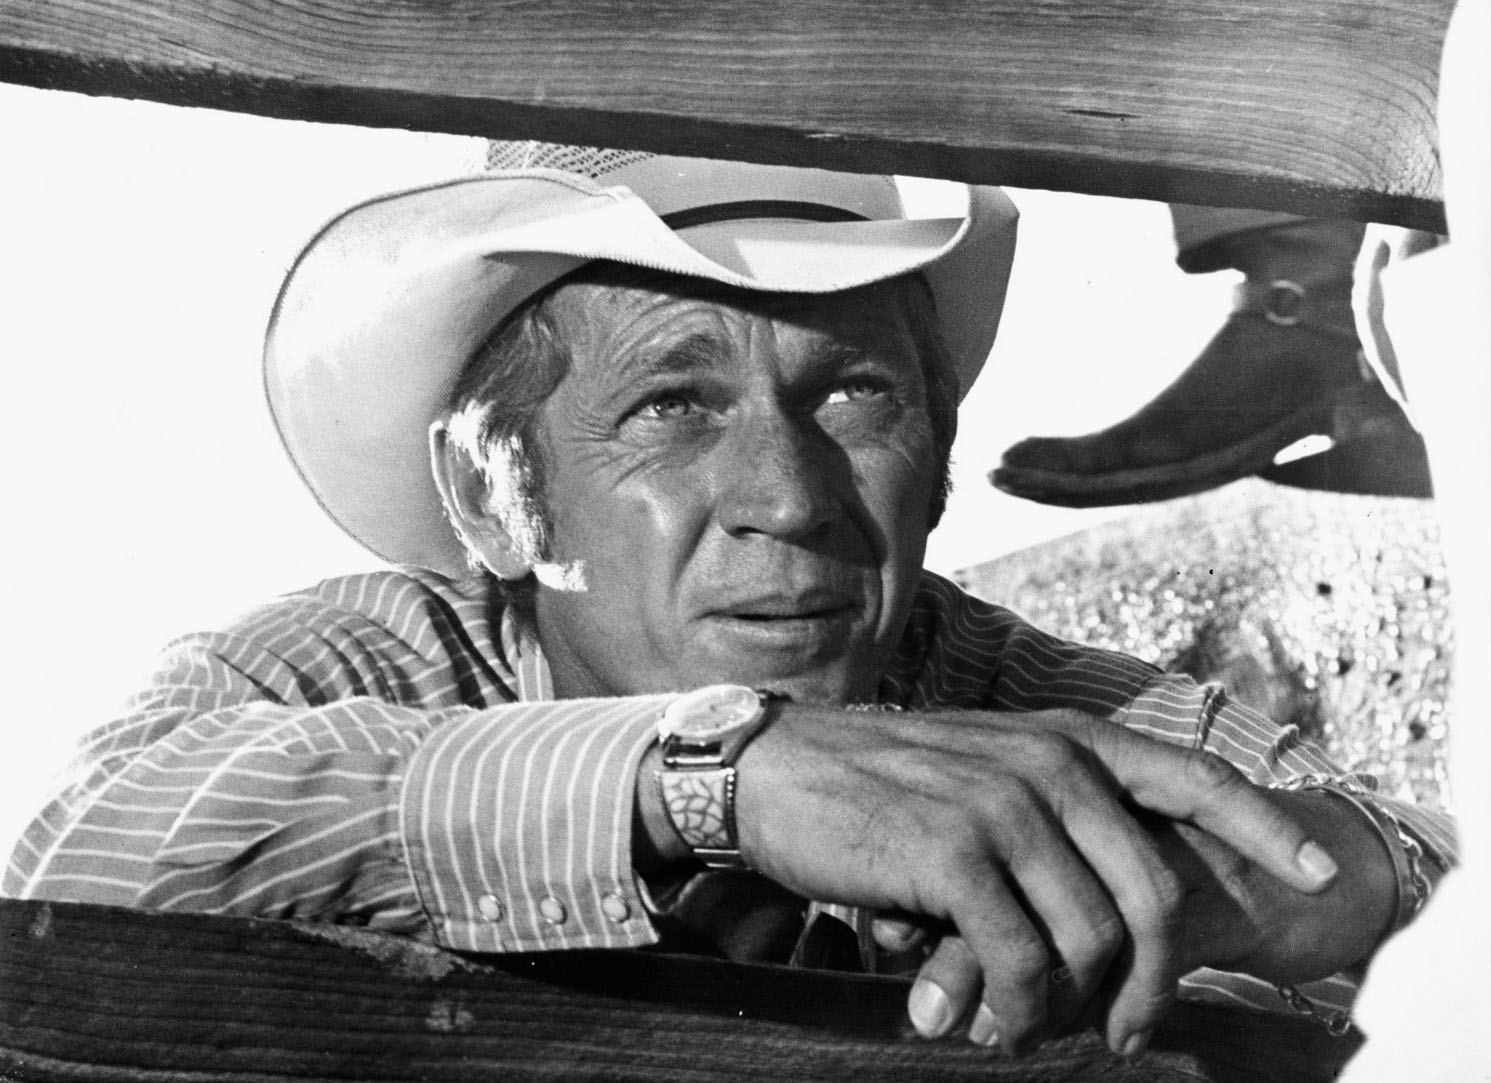 El Rey del Rodeo. Sam Peckinpah. Junior Bonner. Steve McQueen